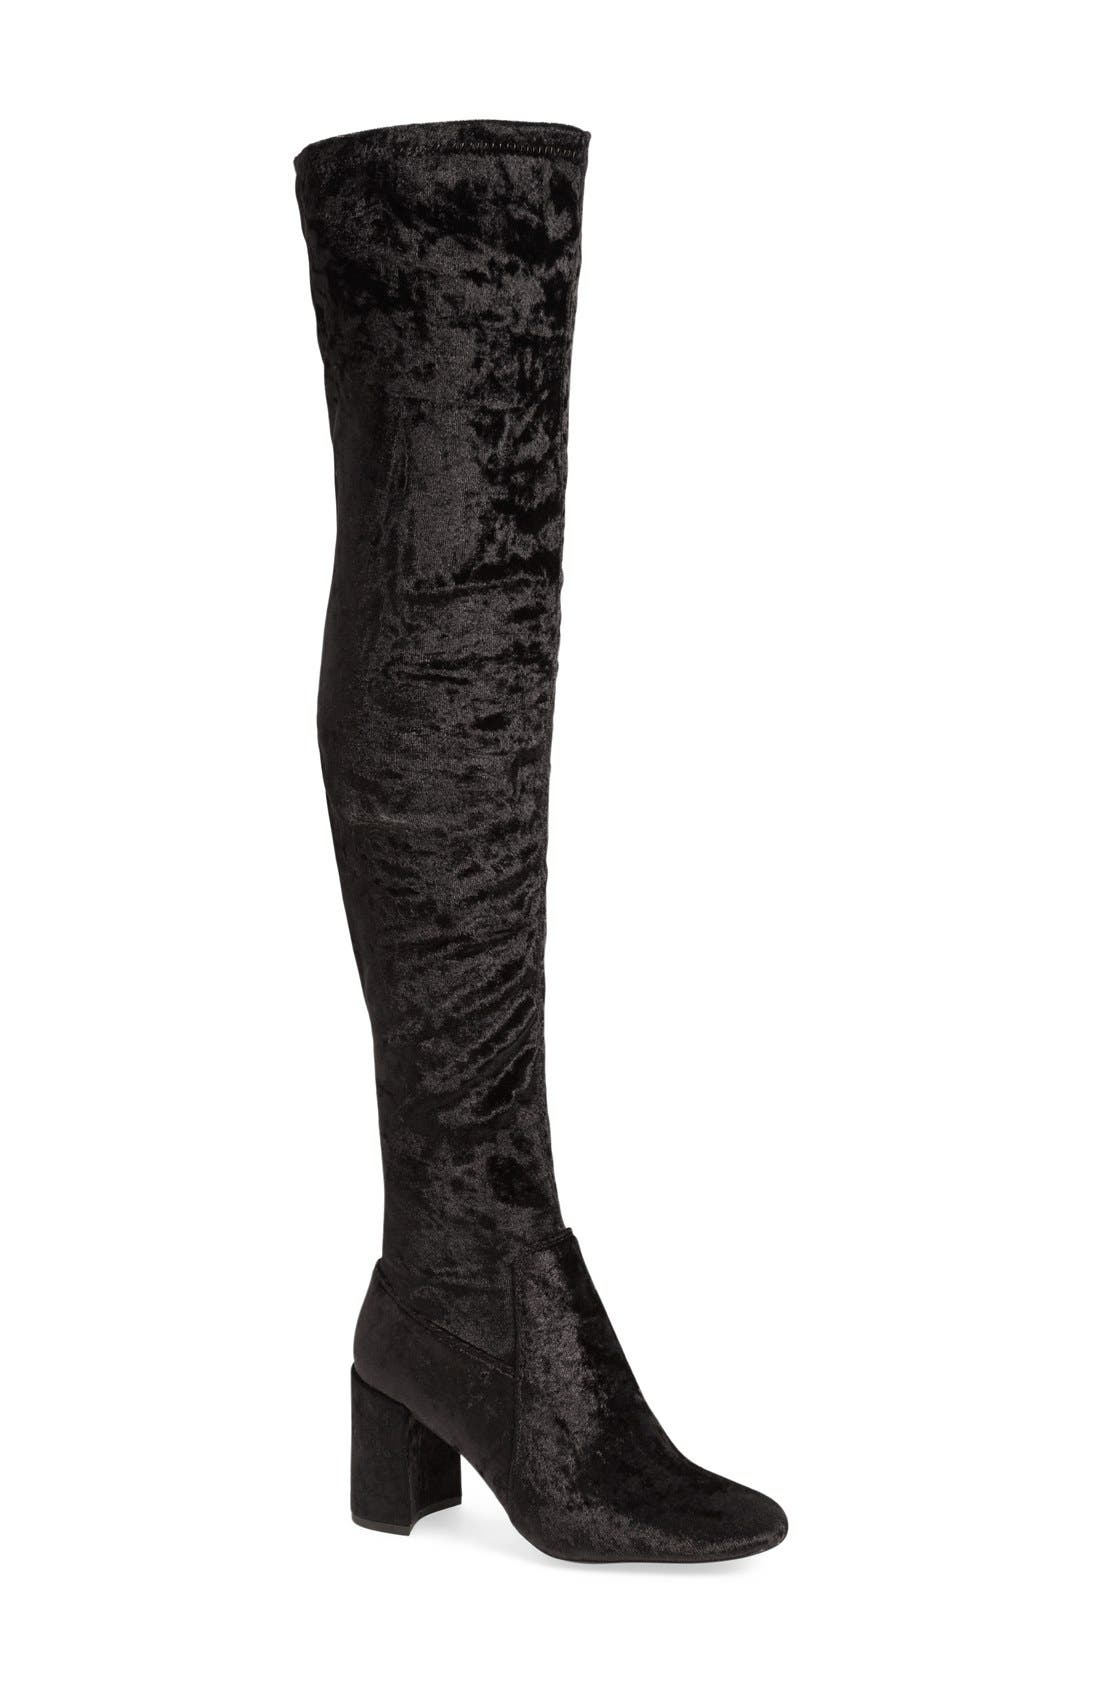 JEFFREY CAMPBELL 'Cienega' Over the Knee Boot, Main, color, 001